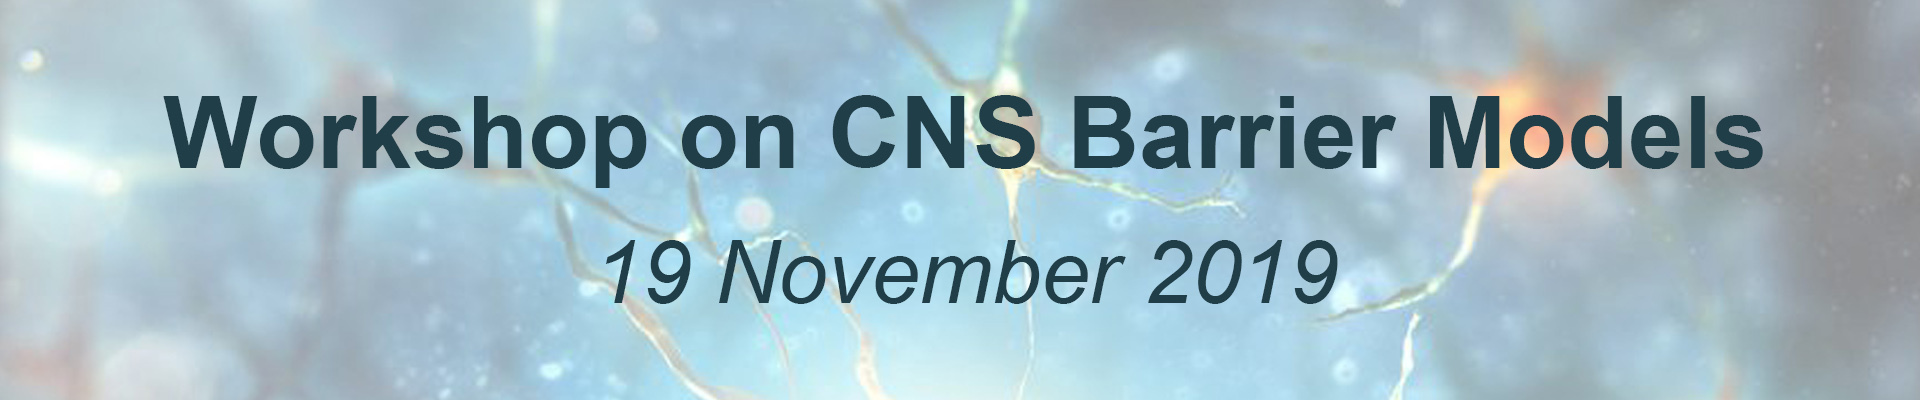 Workshop on CNS barrier models